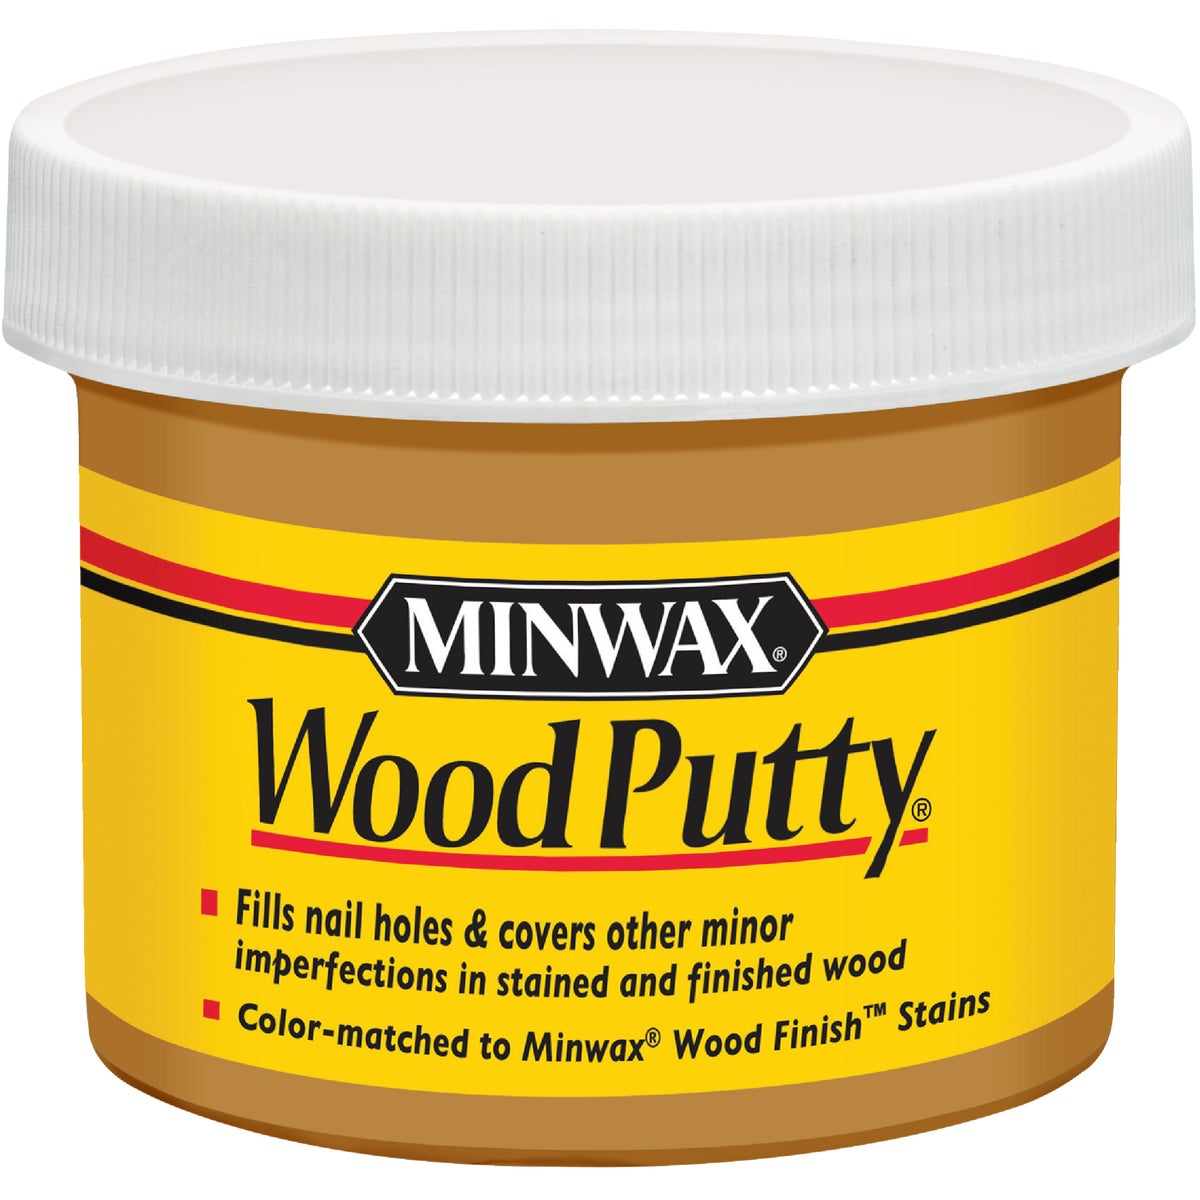 CHERRY WOOD PUTTY